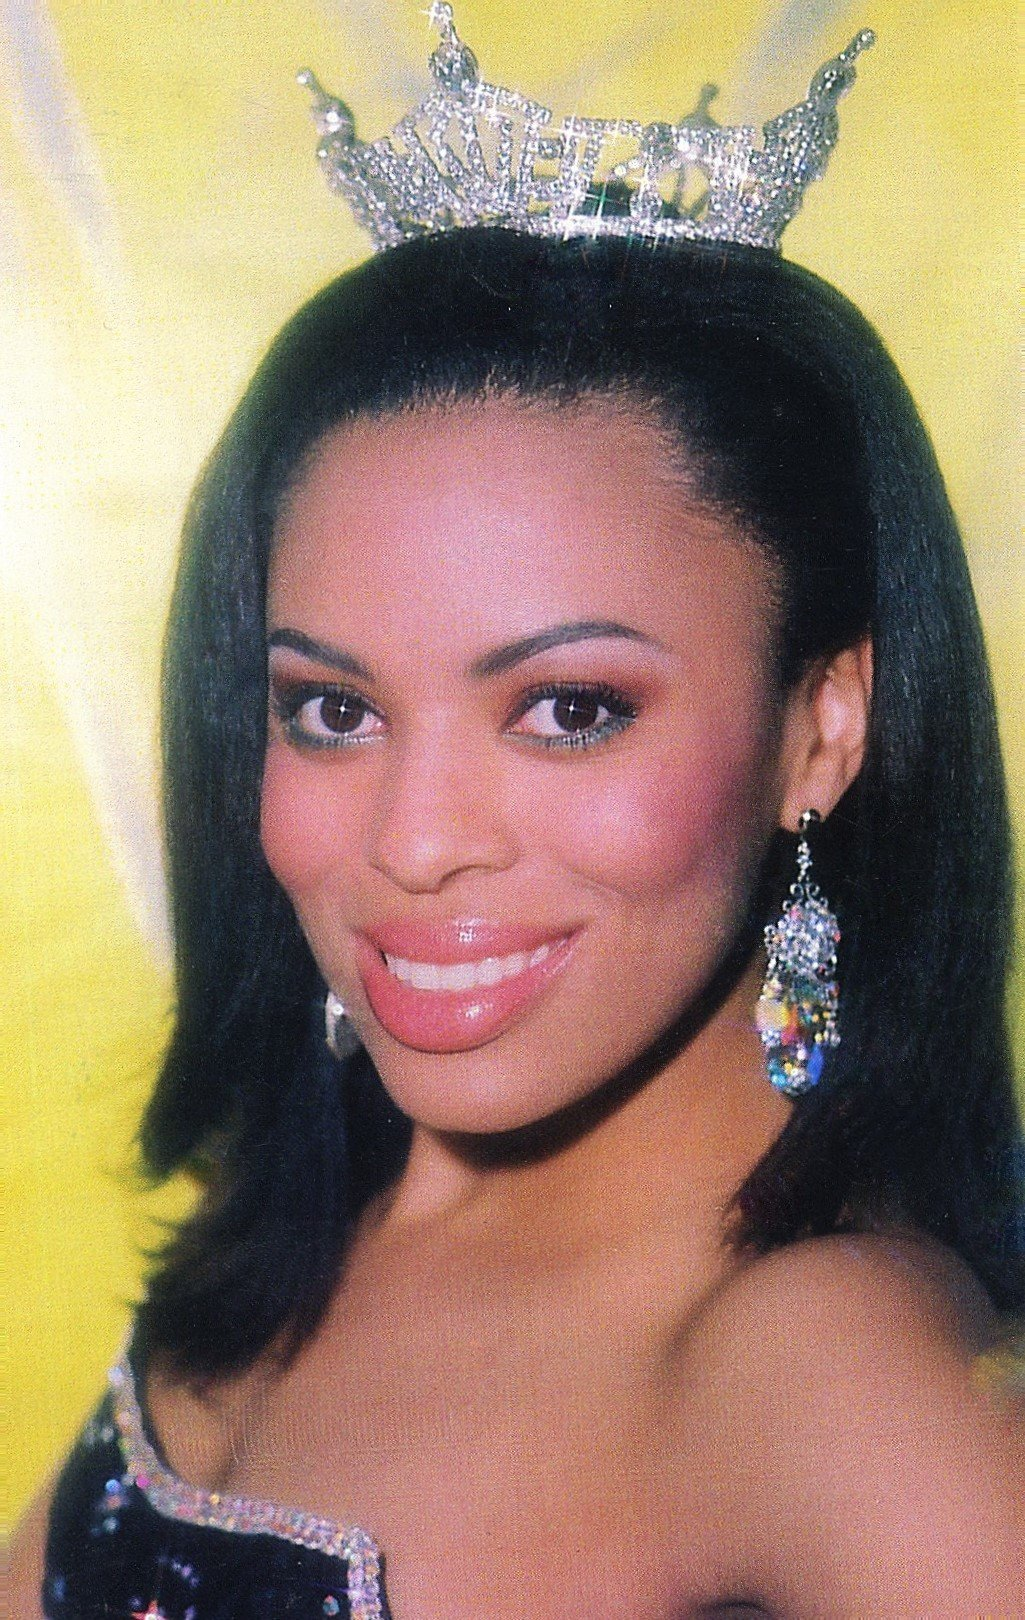 MISS SOUTH CAROLINA - CRYSTAL GARRETT  She placed TOP 16 at MISS AMERICA and WINNER of REALITY CHECK.